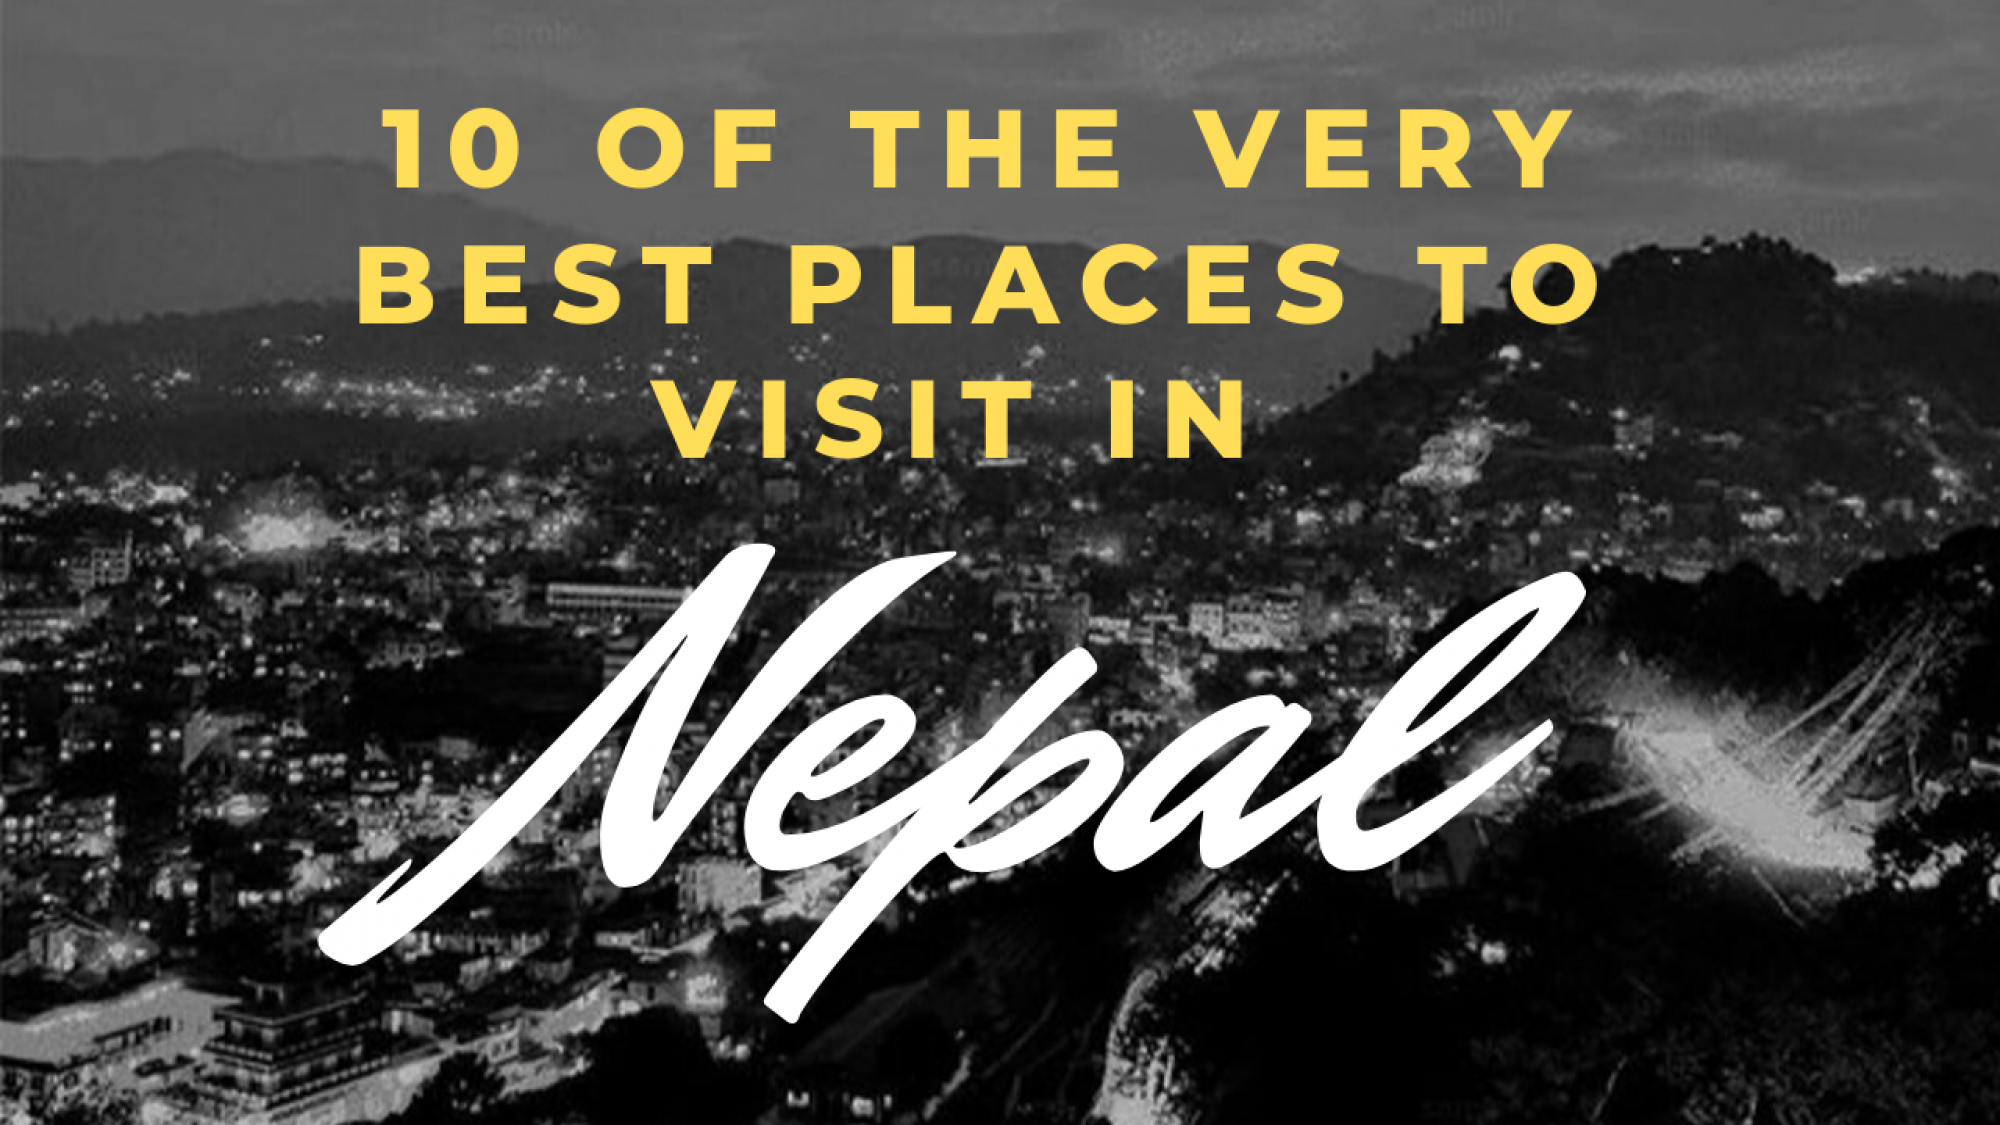 10 of The Very Best Places To Visit In